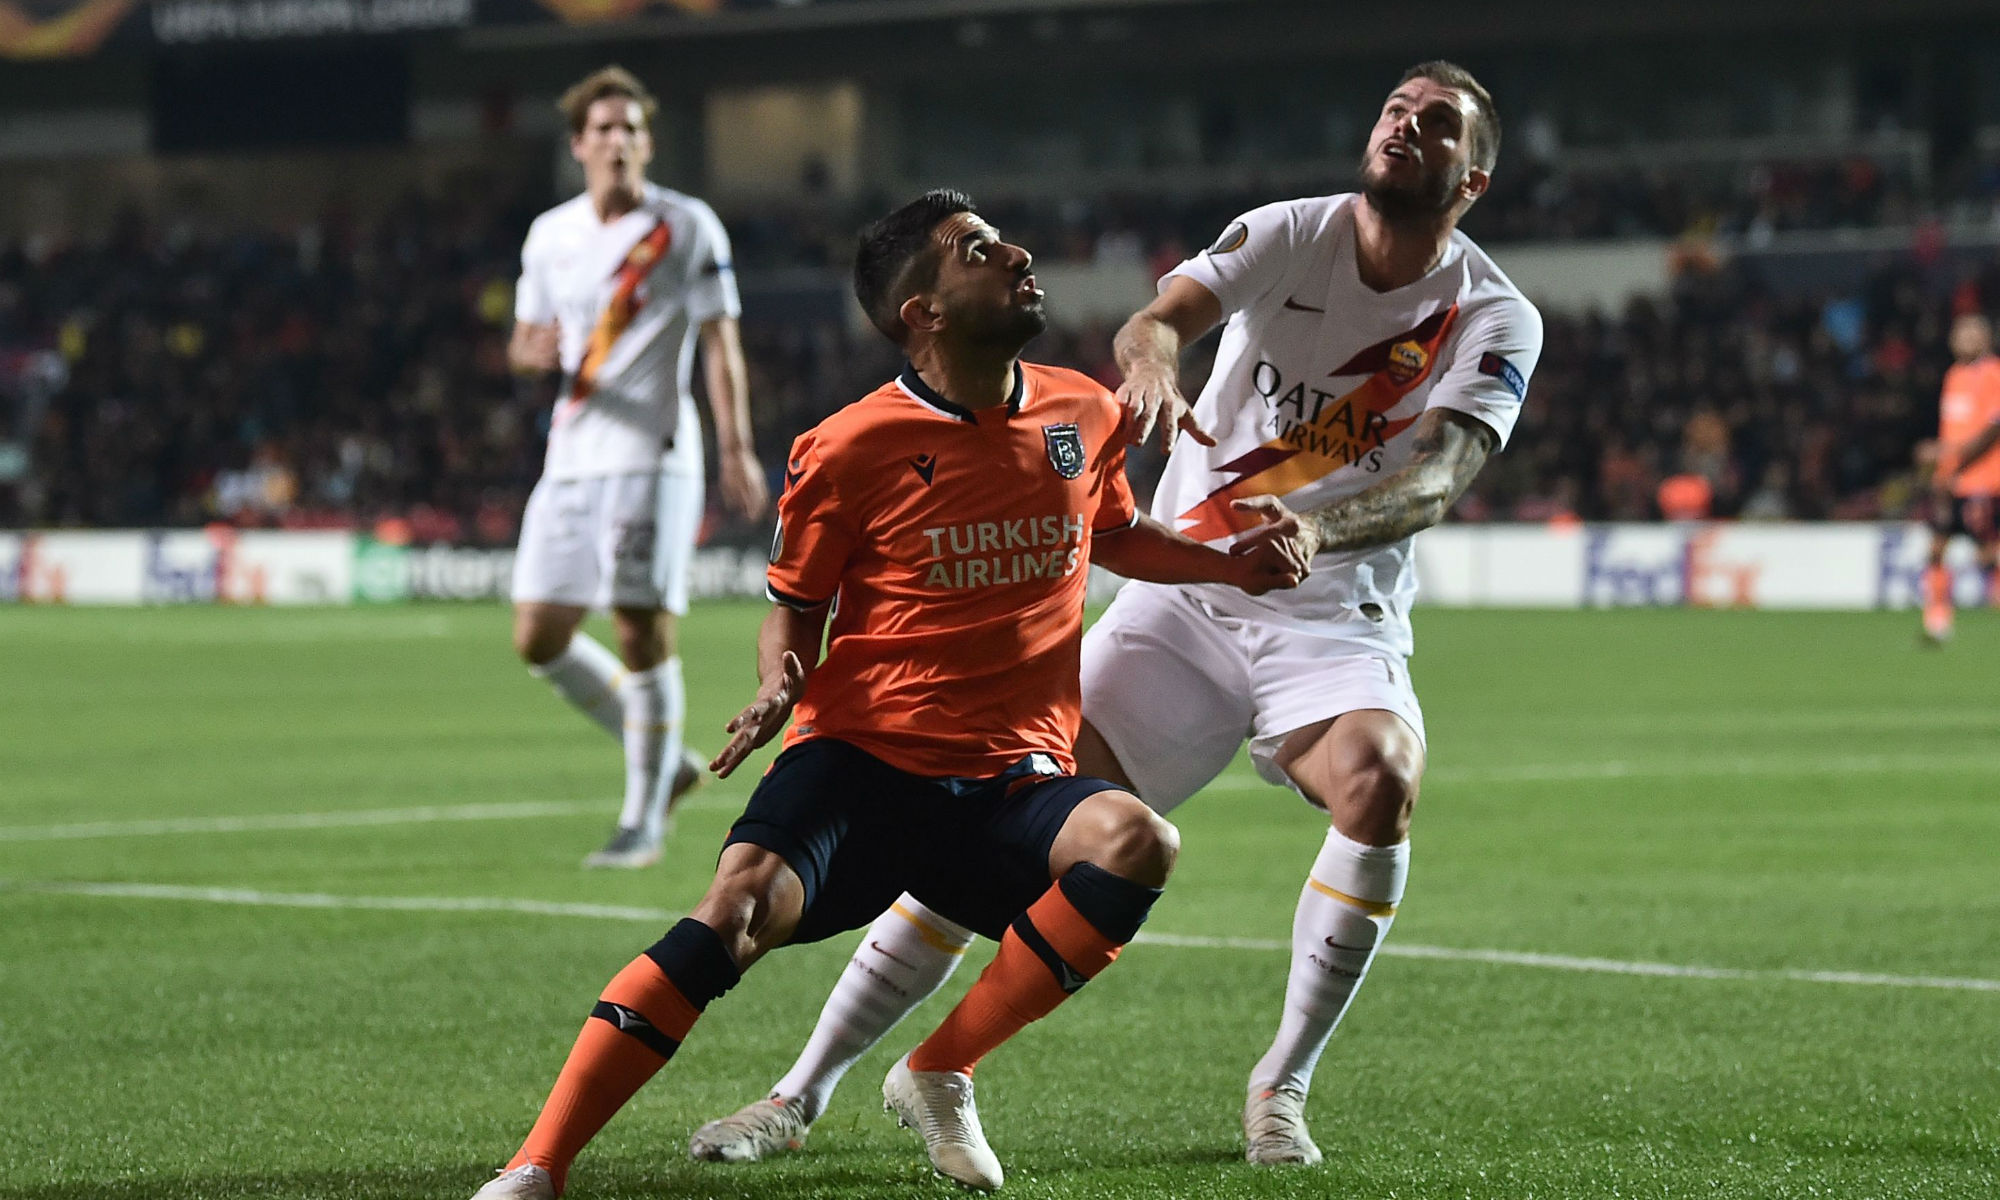 Behich tussles for the ball while in action for Istanbul Başakşehir.